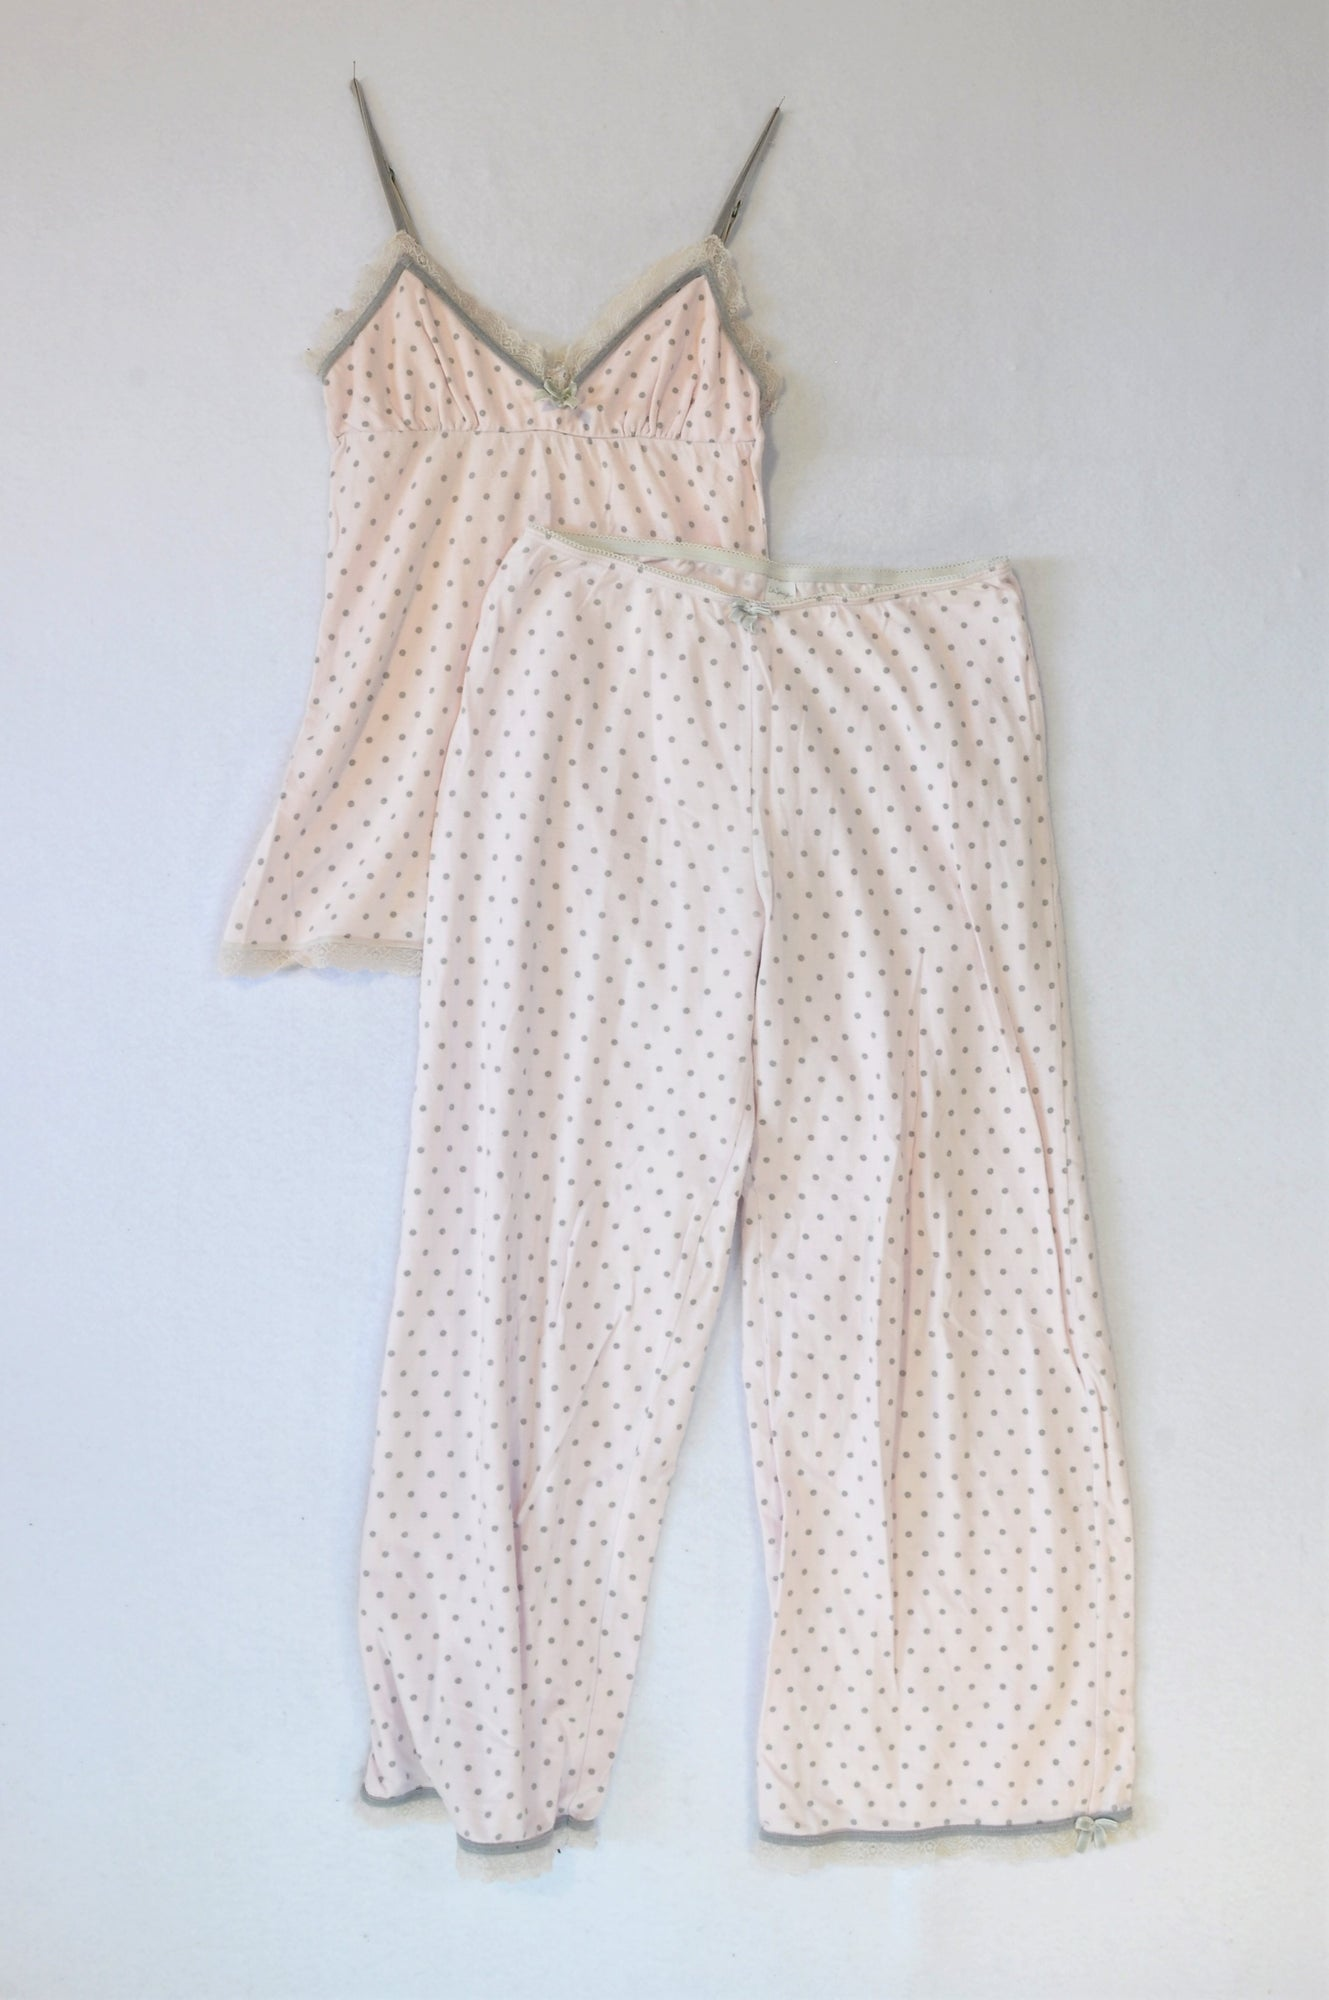 La Senza Pink Polka Dot Top And Pants Pyjamas Women Size XS